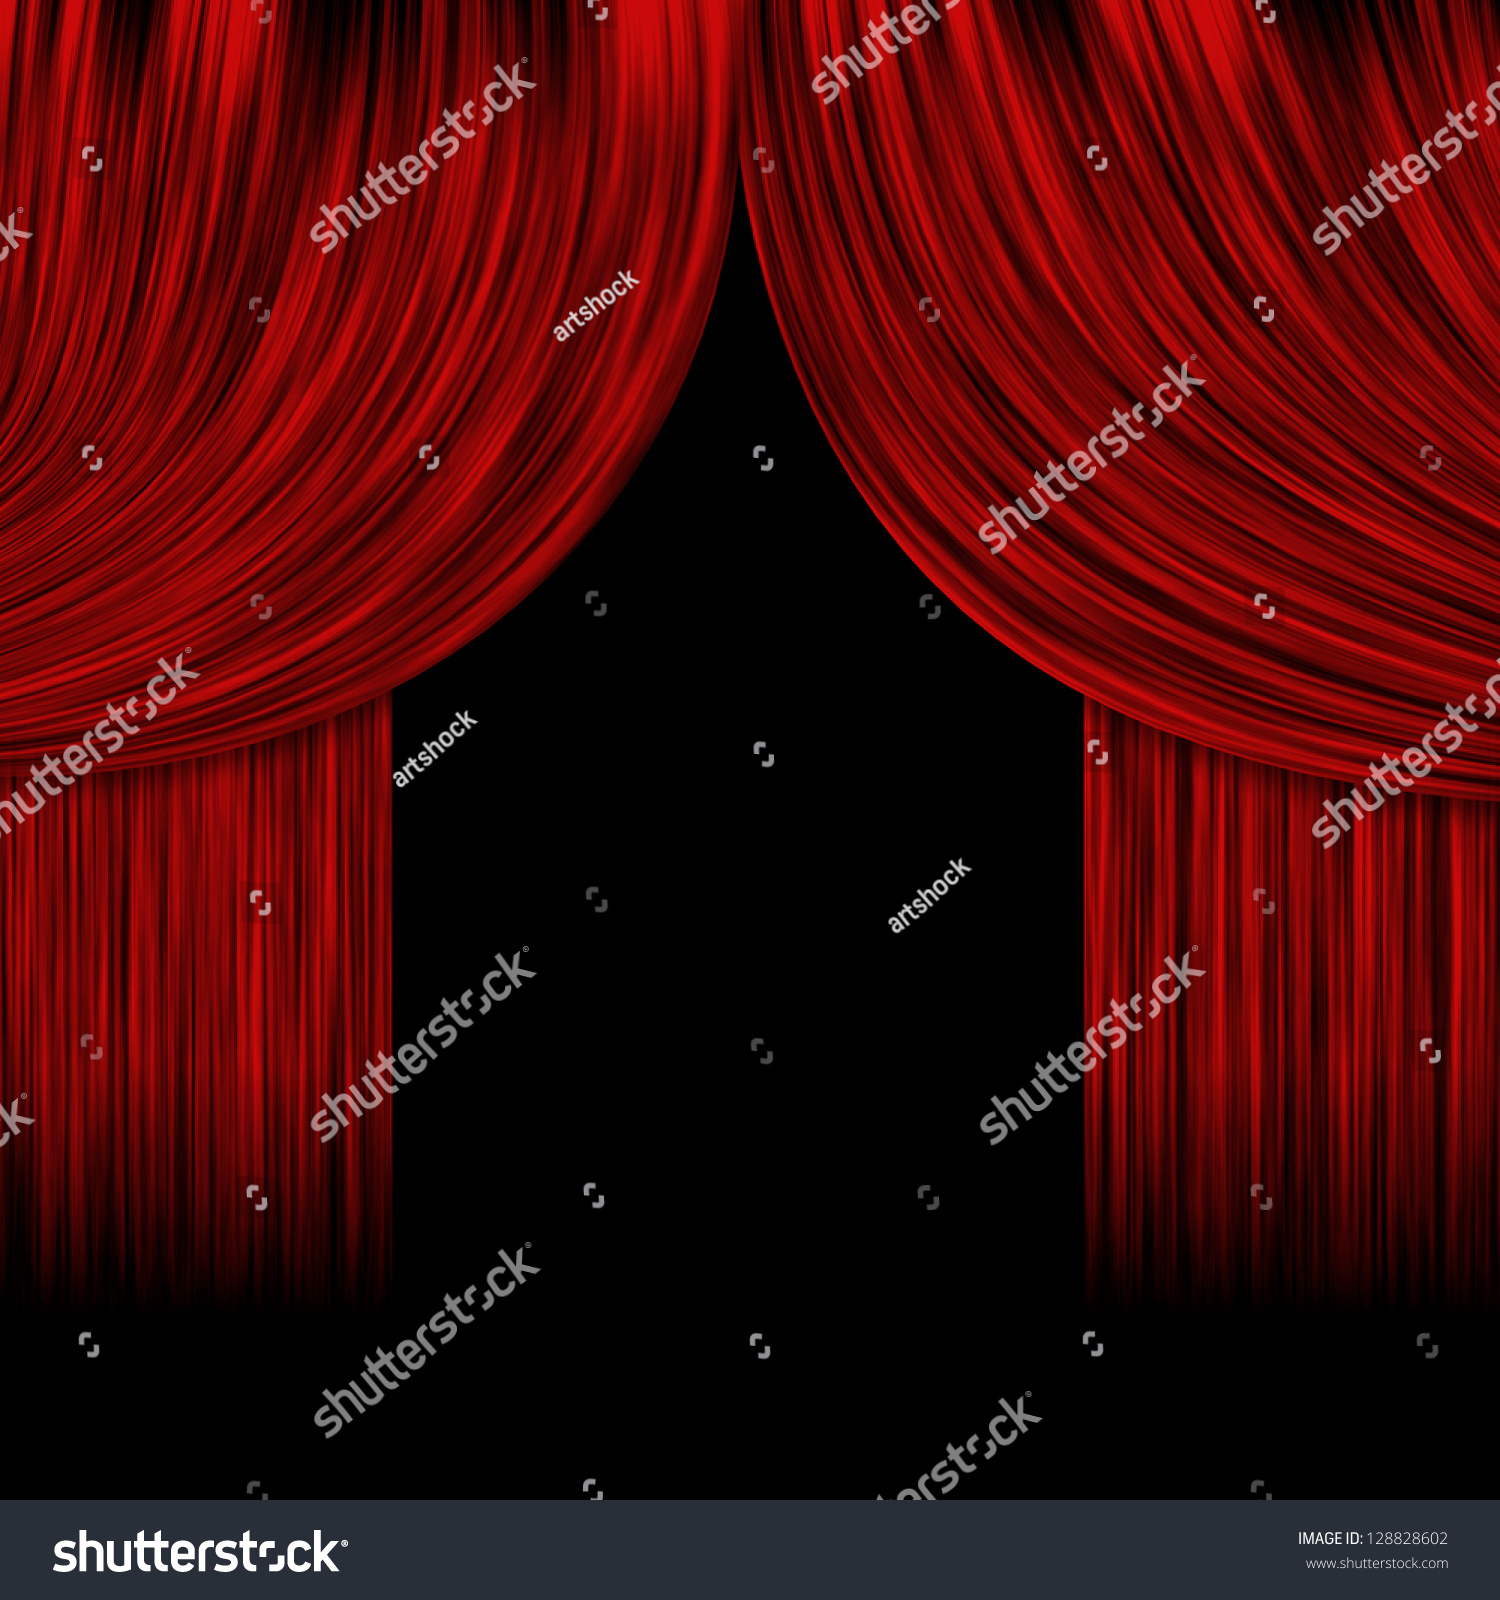 Open theater drapes or stage curtains royalty free stock image image - Illustration Of Open Theater Drapes Or Stage Curtains With A Black Background